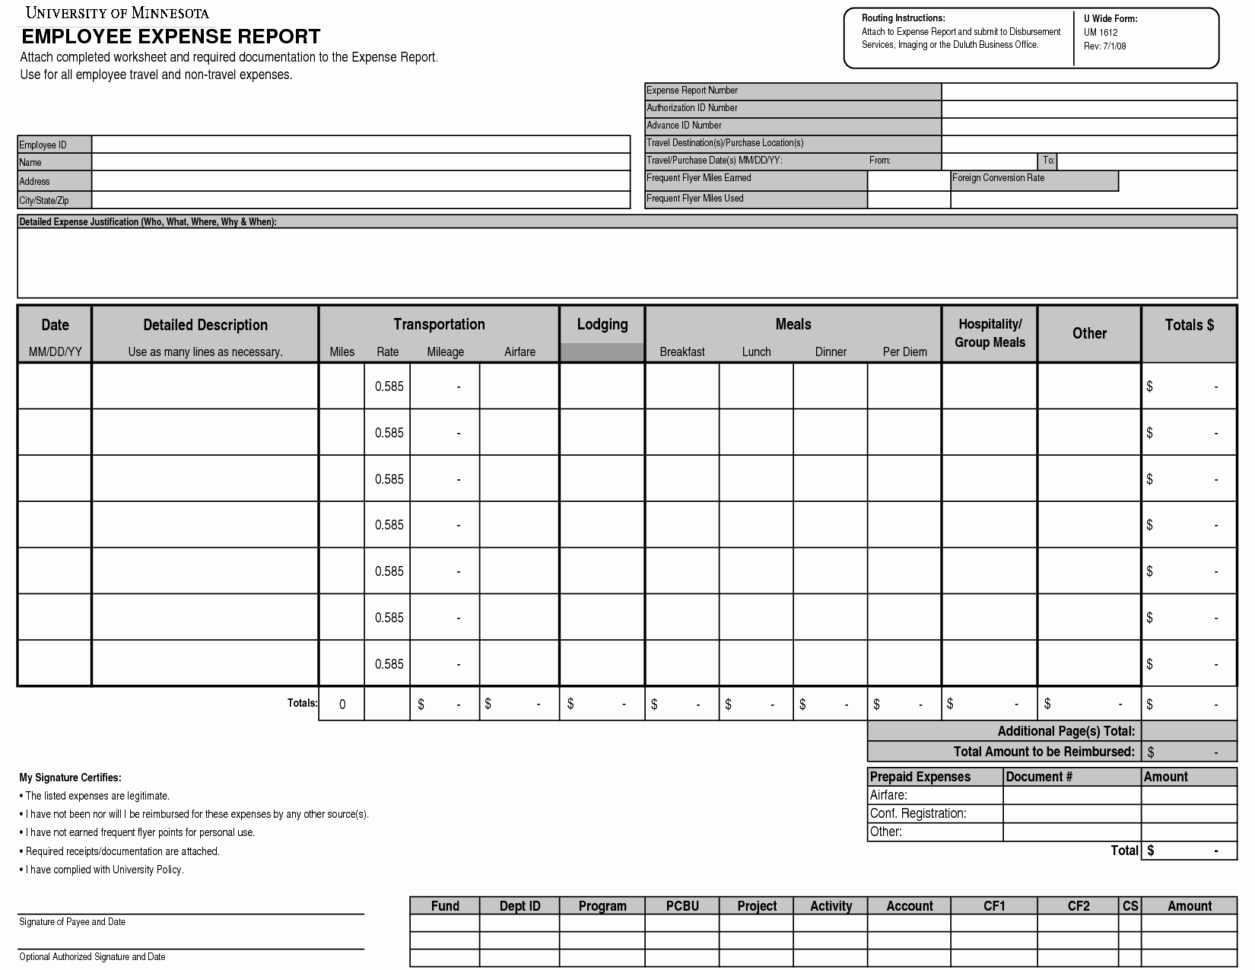 Weekly Expense Report Template Excel New Detailed Expense Report Template Spreadsheet Templates for